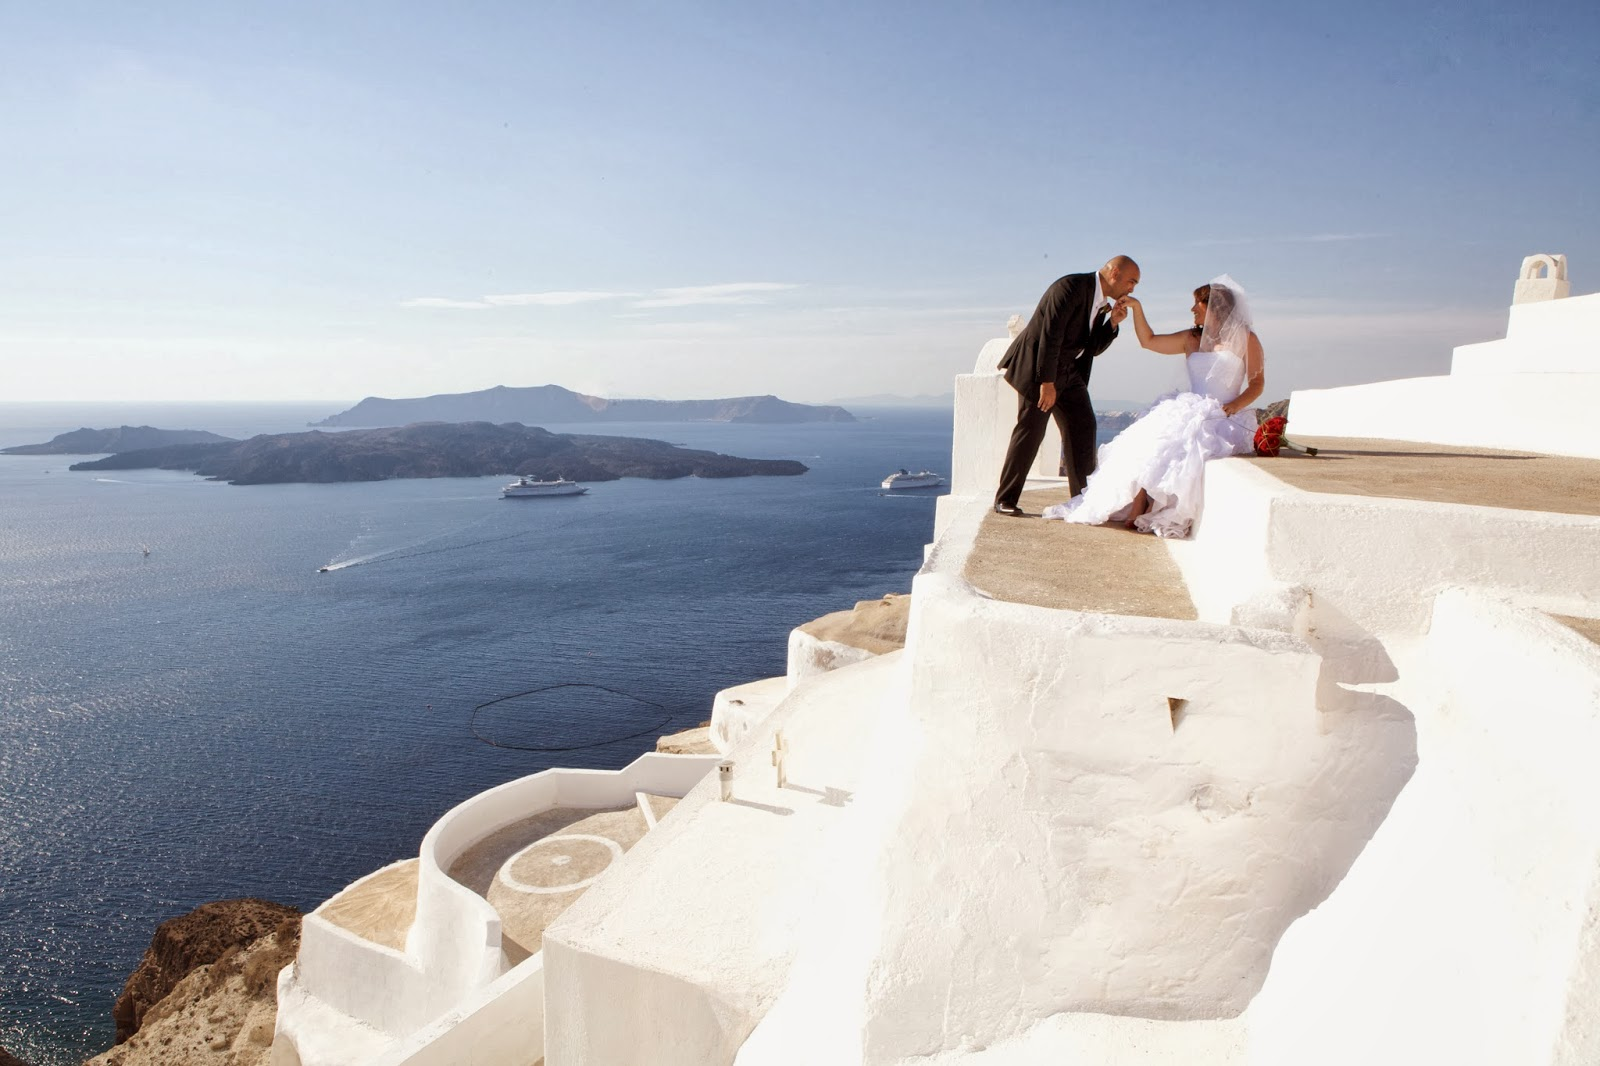 A Wedding In Santorini Is Dream For Lot Of S Among The 10 Top Destination Places World